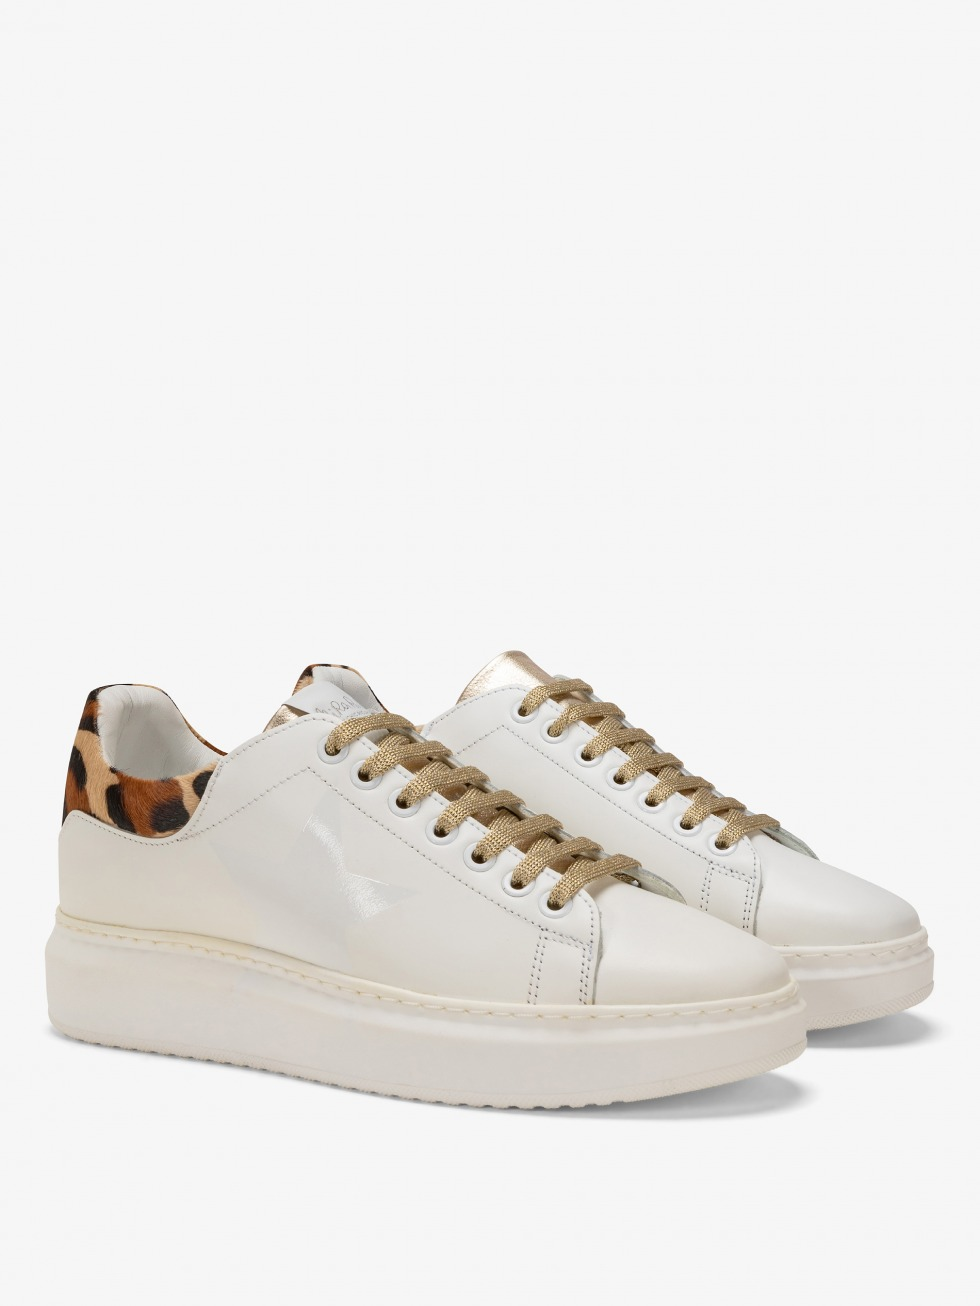 Angel Sneakers - Africa Gold Star